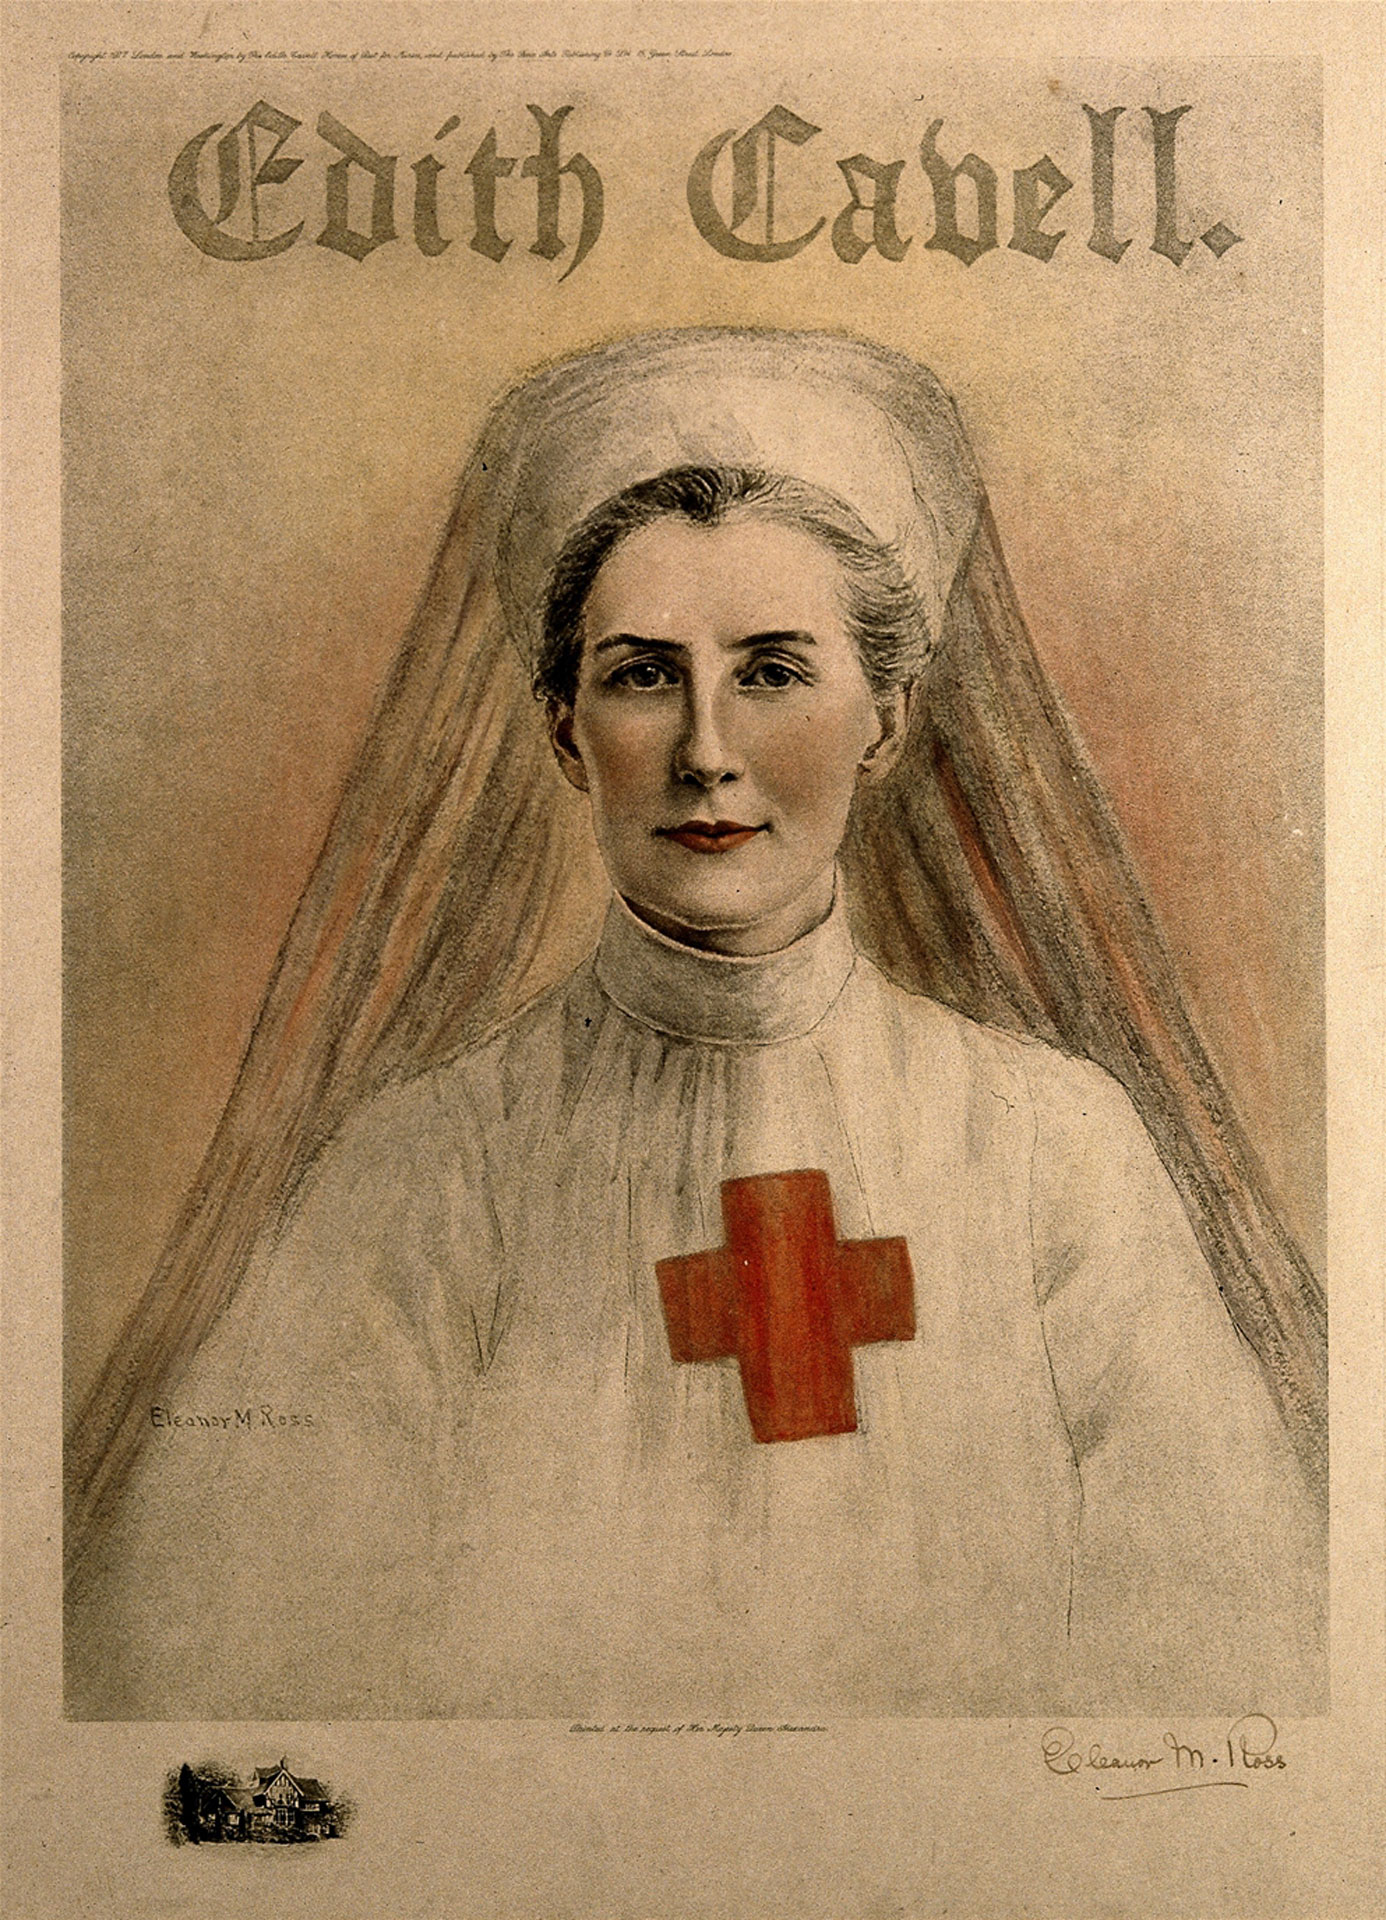 Edith Cavell poster